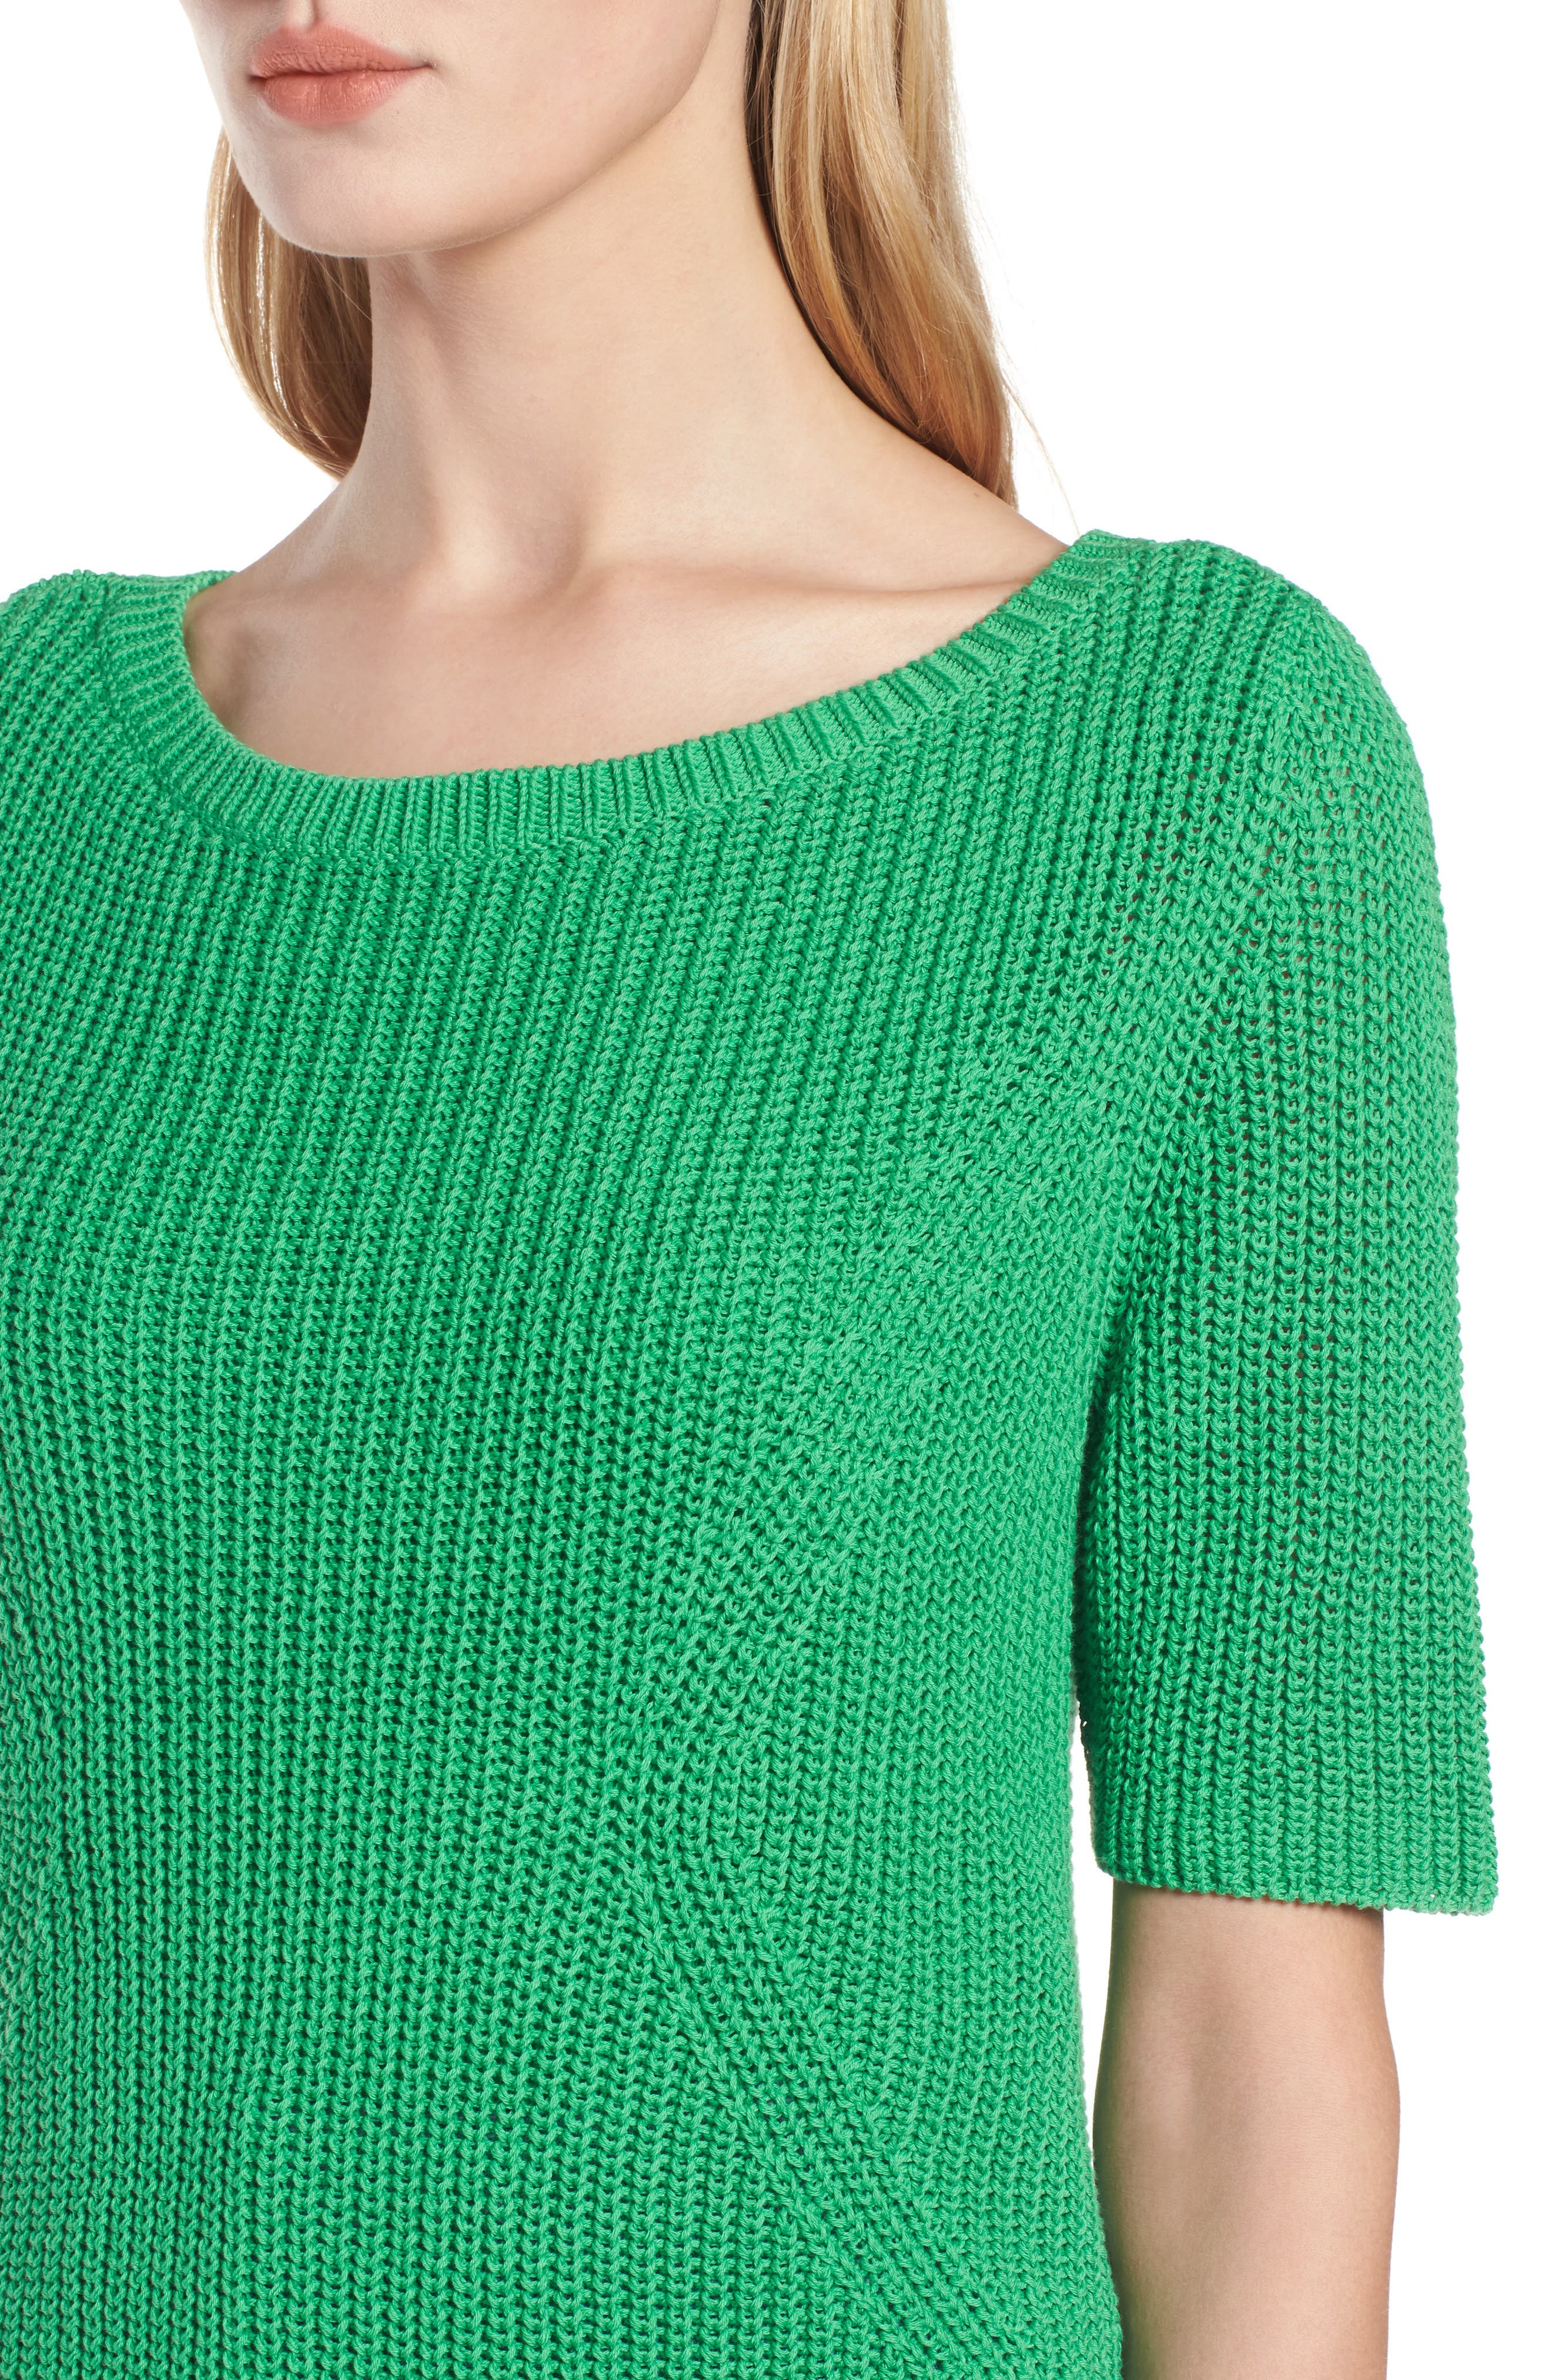 Shaker Stitch Cotton Sweater,                             Alternate thumbnail 4, color,                             Green Kelly